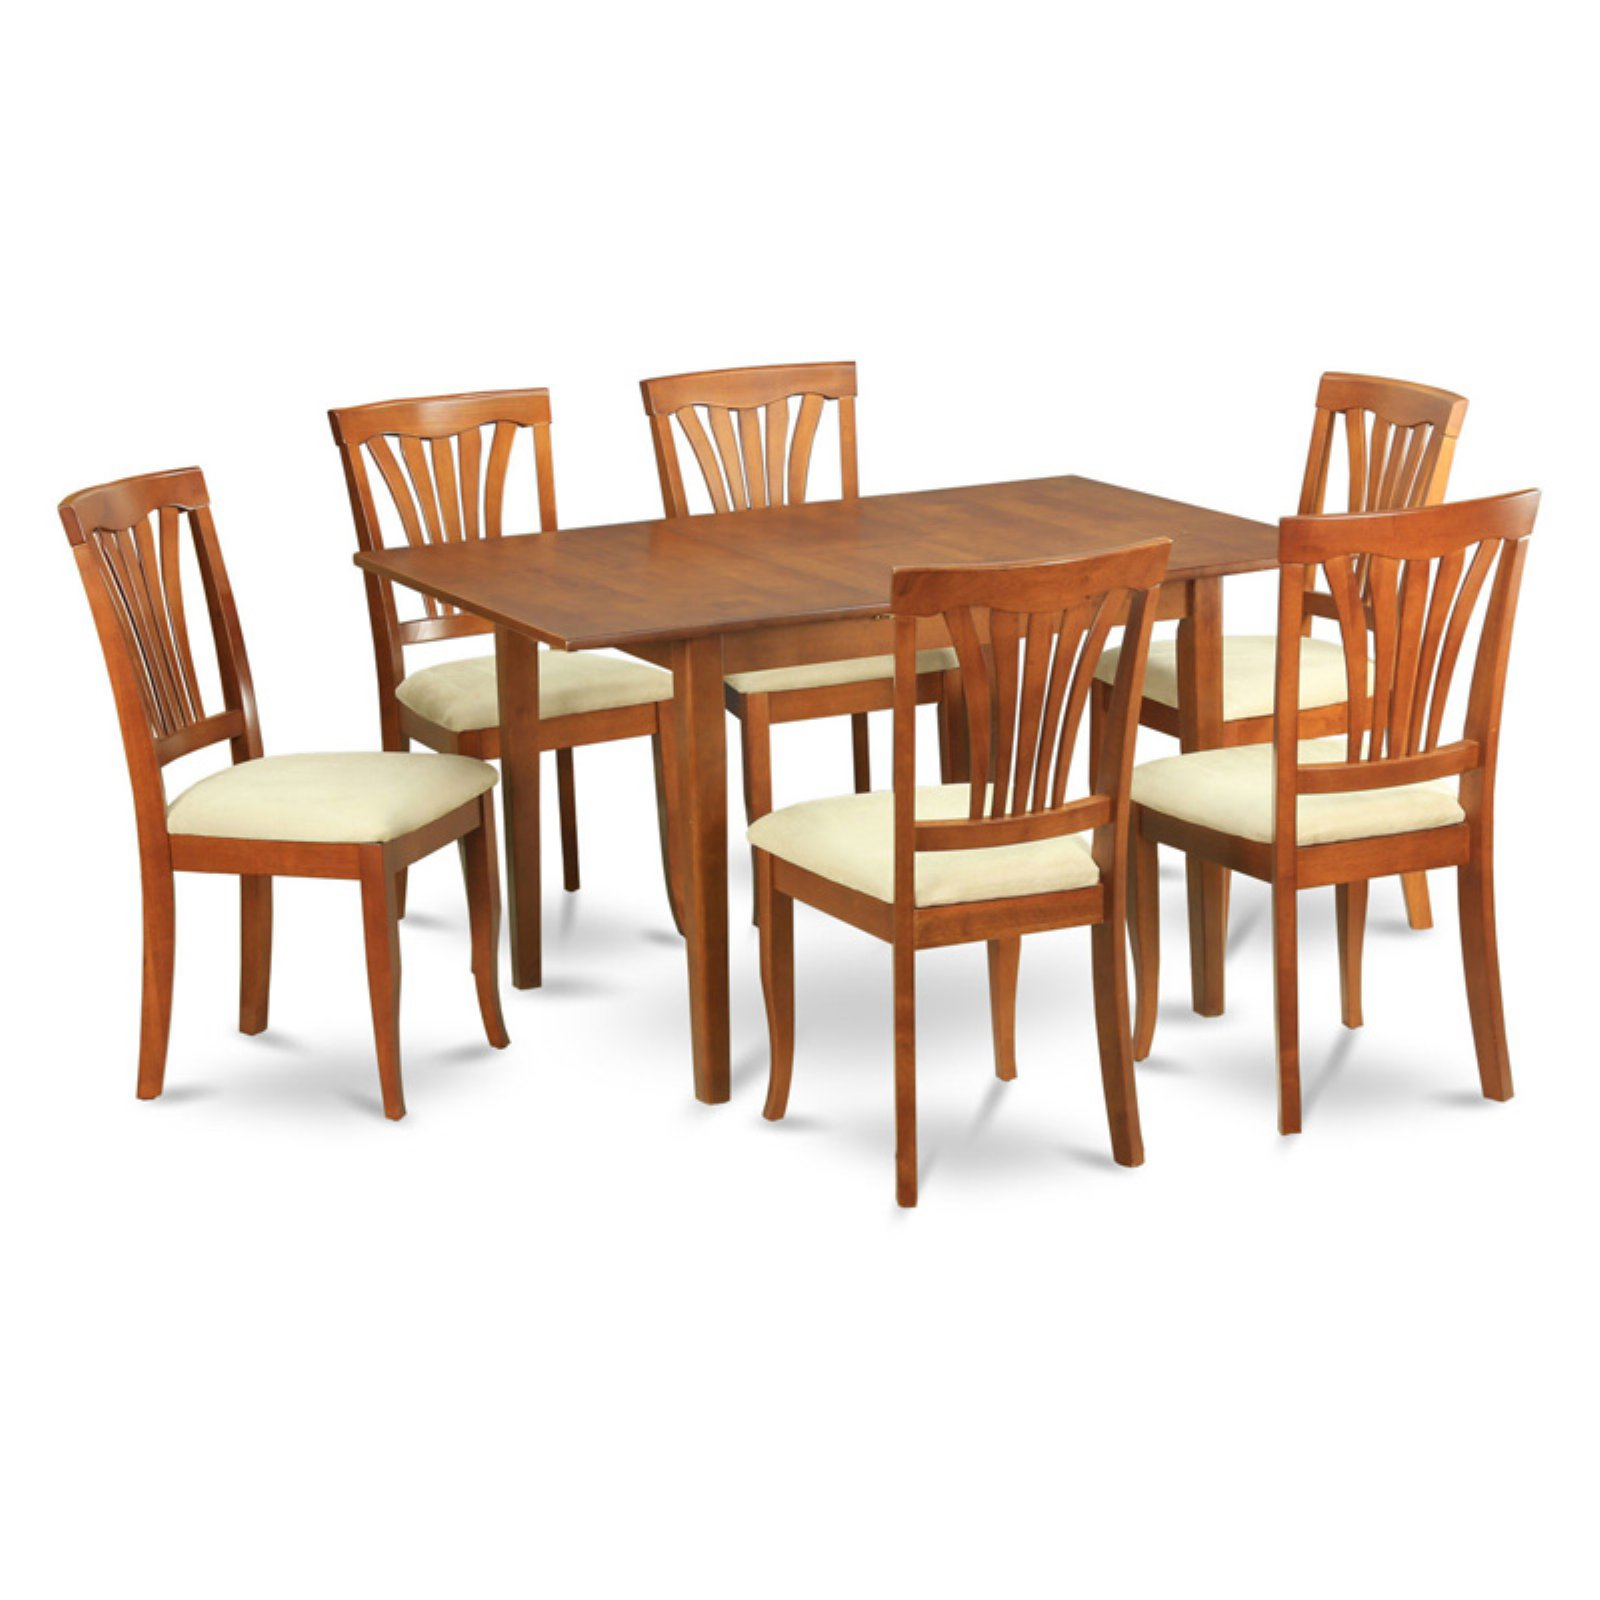 East West Furniture Milan 7 Piece Rectangular Dining Table Set with Avon Chairs